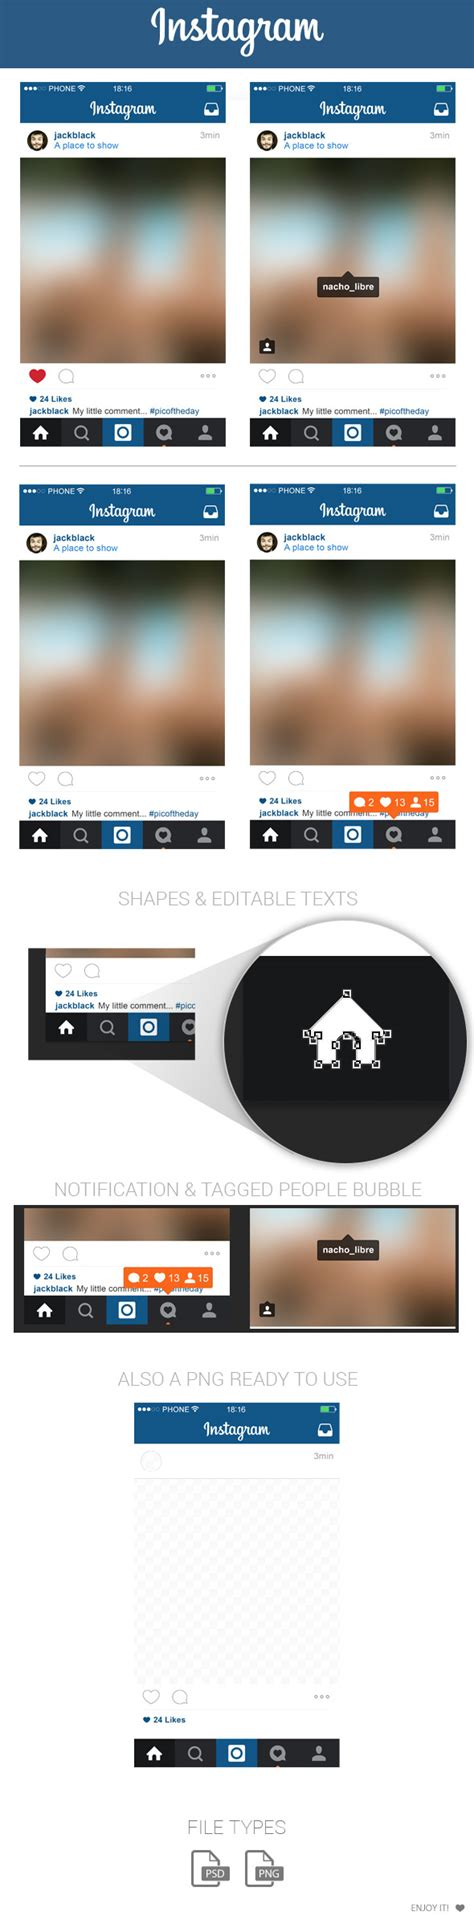 instagram screen layout free instagram home screen layout psd update 2015 on